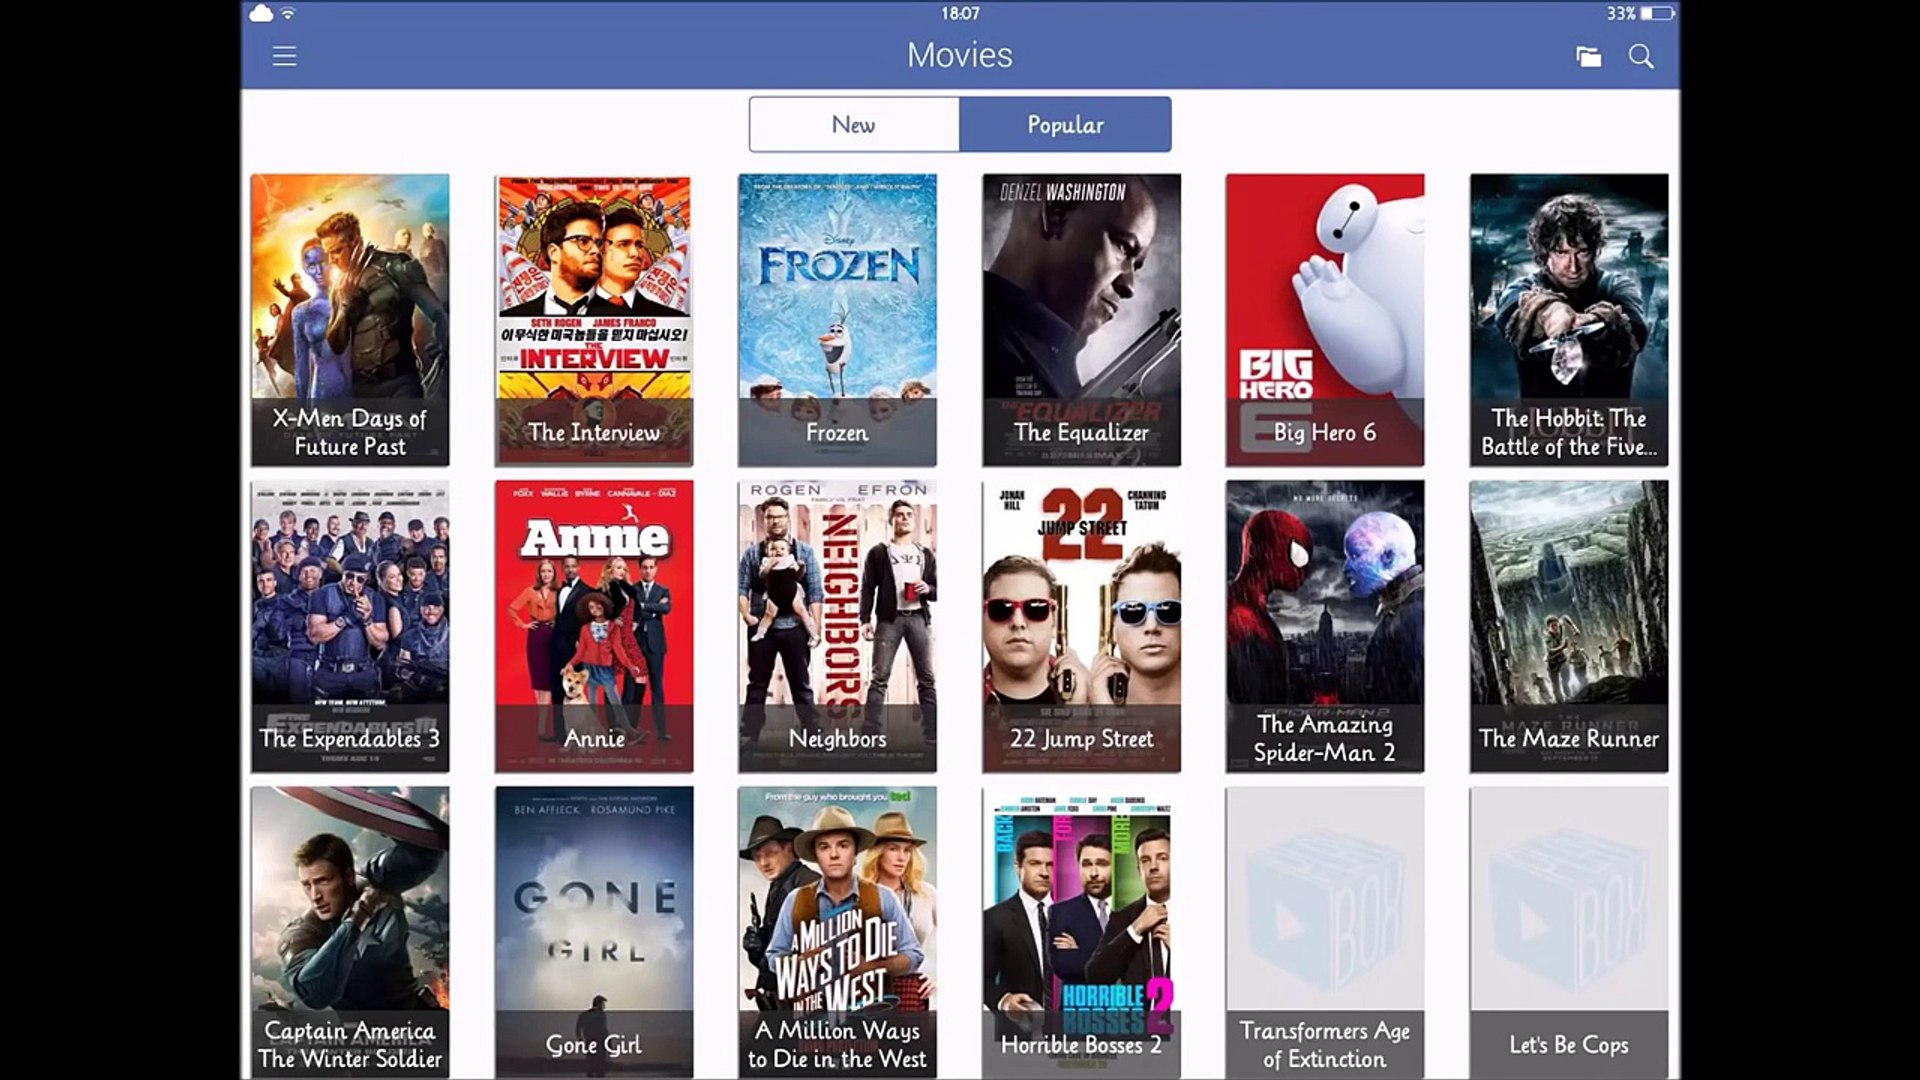 Watch NEW Movies & TV Shows FREE On iOS 7 / 8 / 9 - 9.2.1 / 9.3 NO JAILBREAK iPhone iPad iPod To